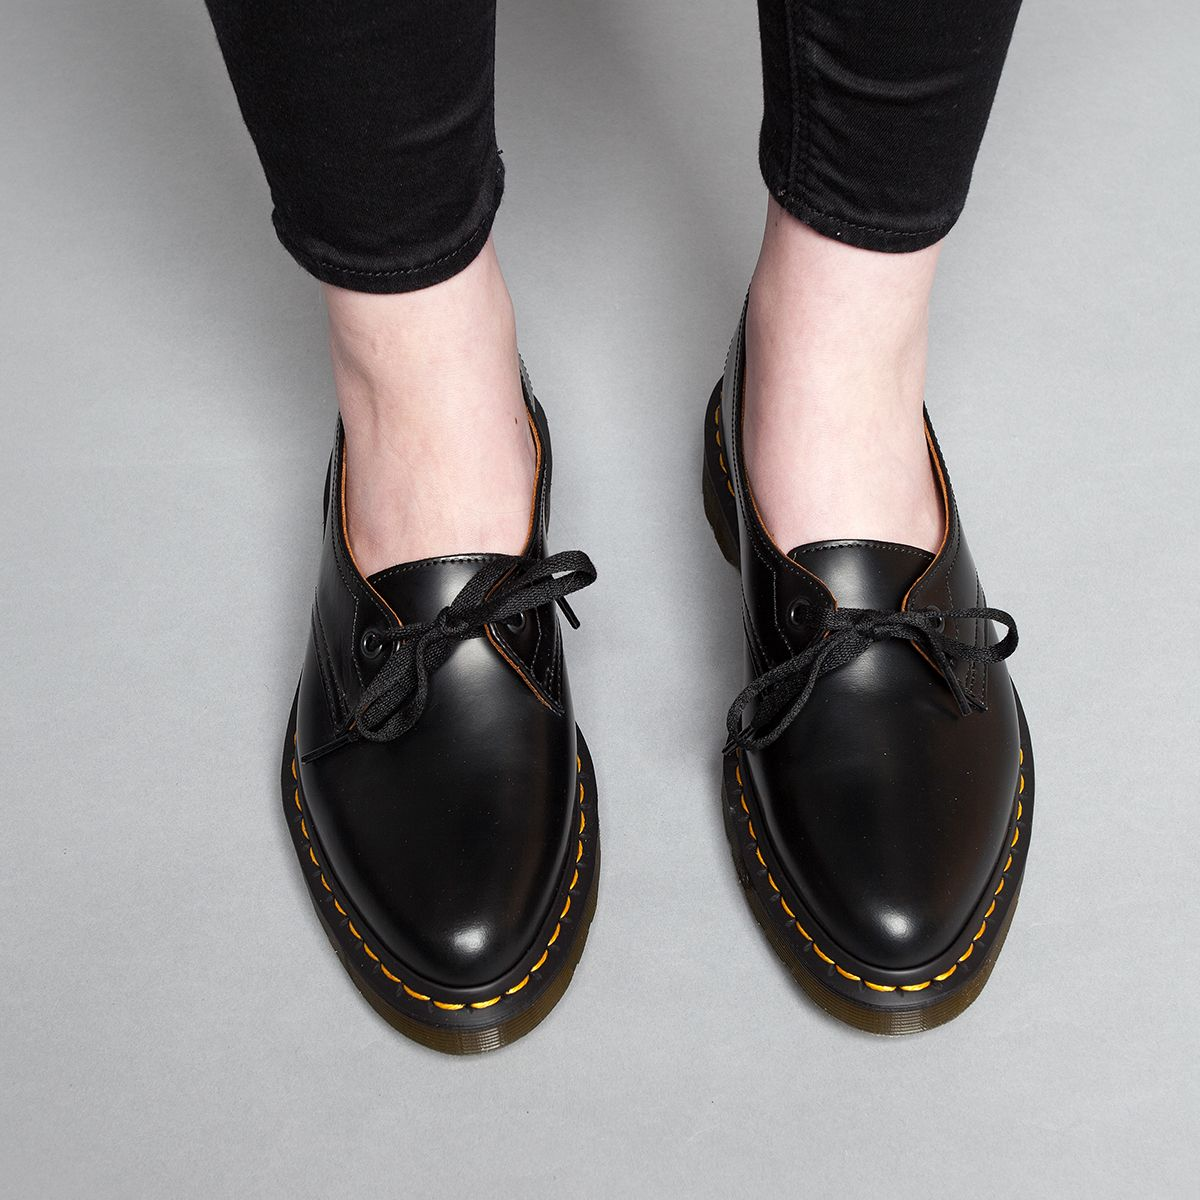 Come say hi -> more styles inspo: www.instagram.com/vv.moodboard fashion style women's fashion outfits footwear, shoes and boots @valuablevanity Dr Martens Siano